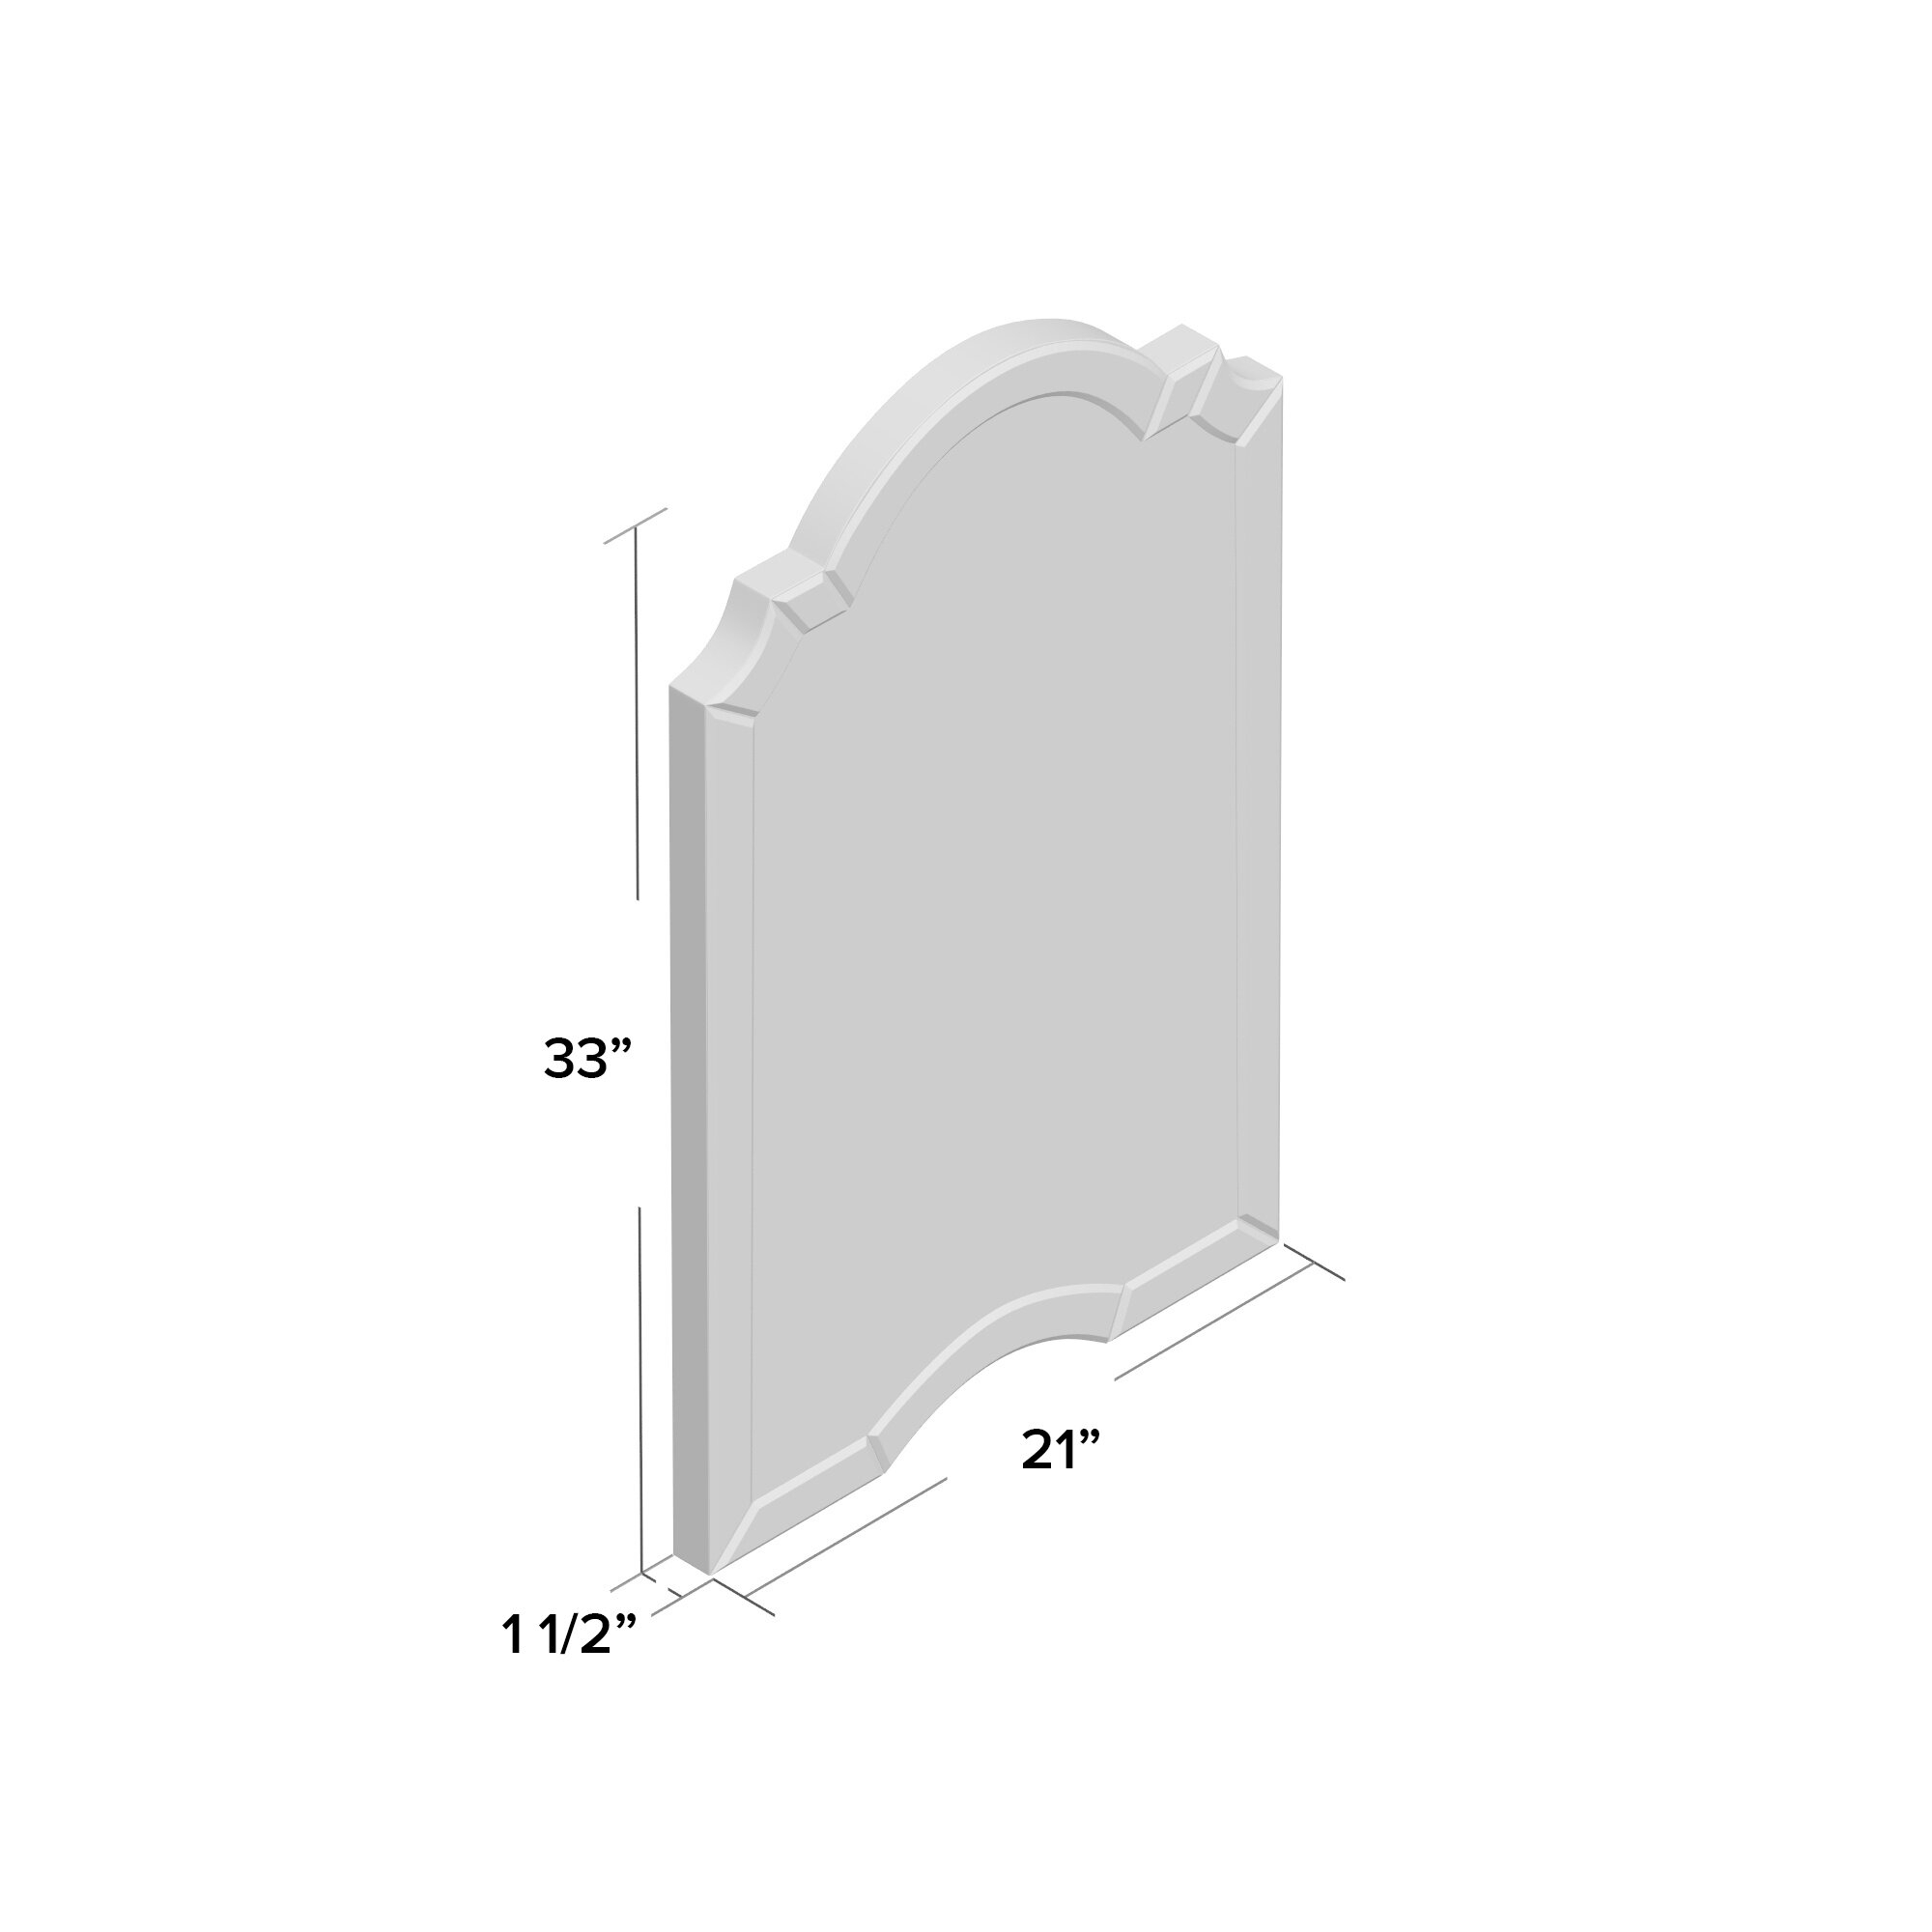 Willa Arlo Interiors Ekaterina Arch/crowned Top Wall Mirror Pertaining To Ekaterina Arch/crowned Top Wall Mirrors (View 9 of 30)